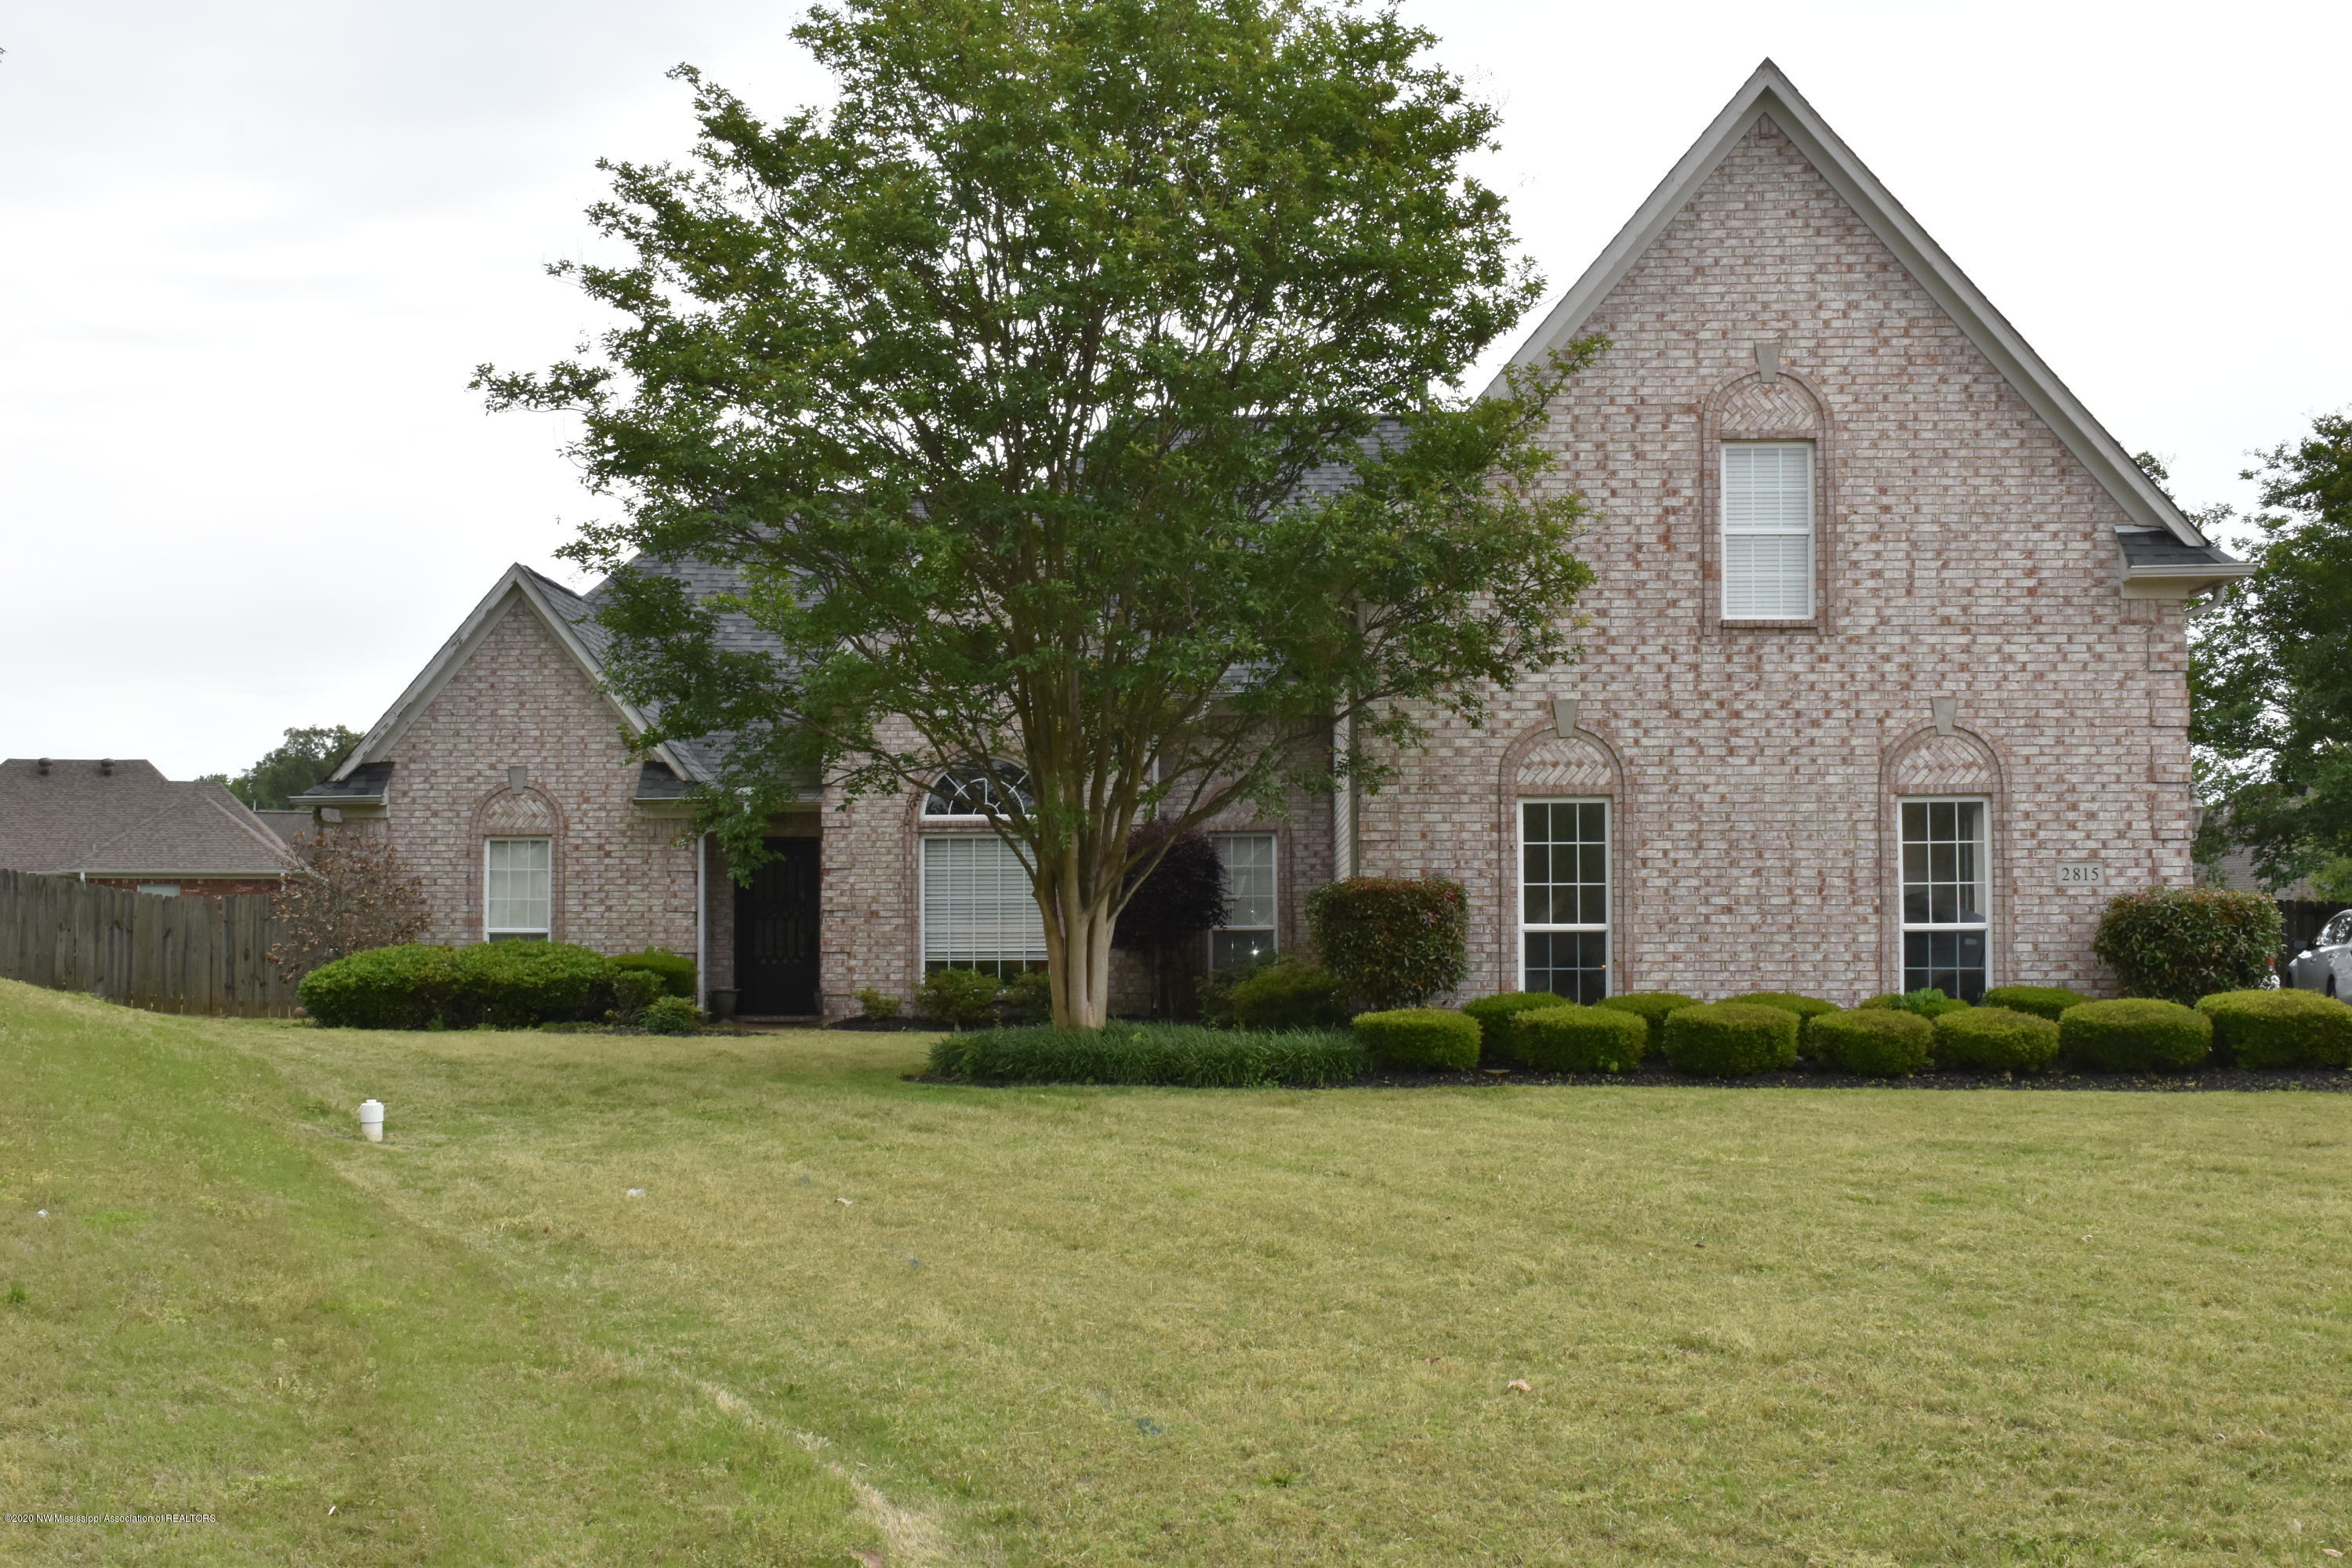 2815 Pershing Cove, Southaven, Mississippi